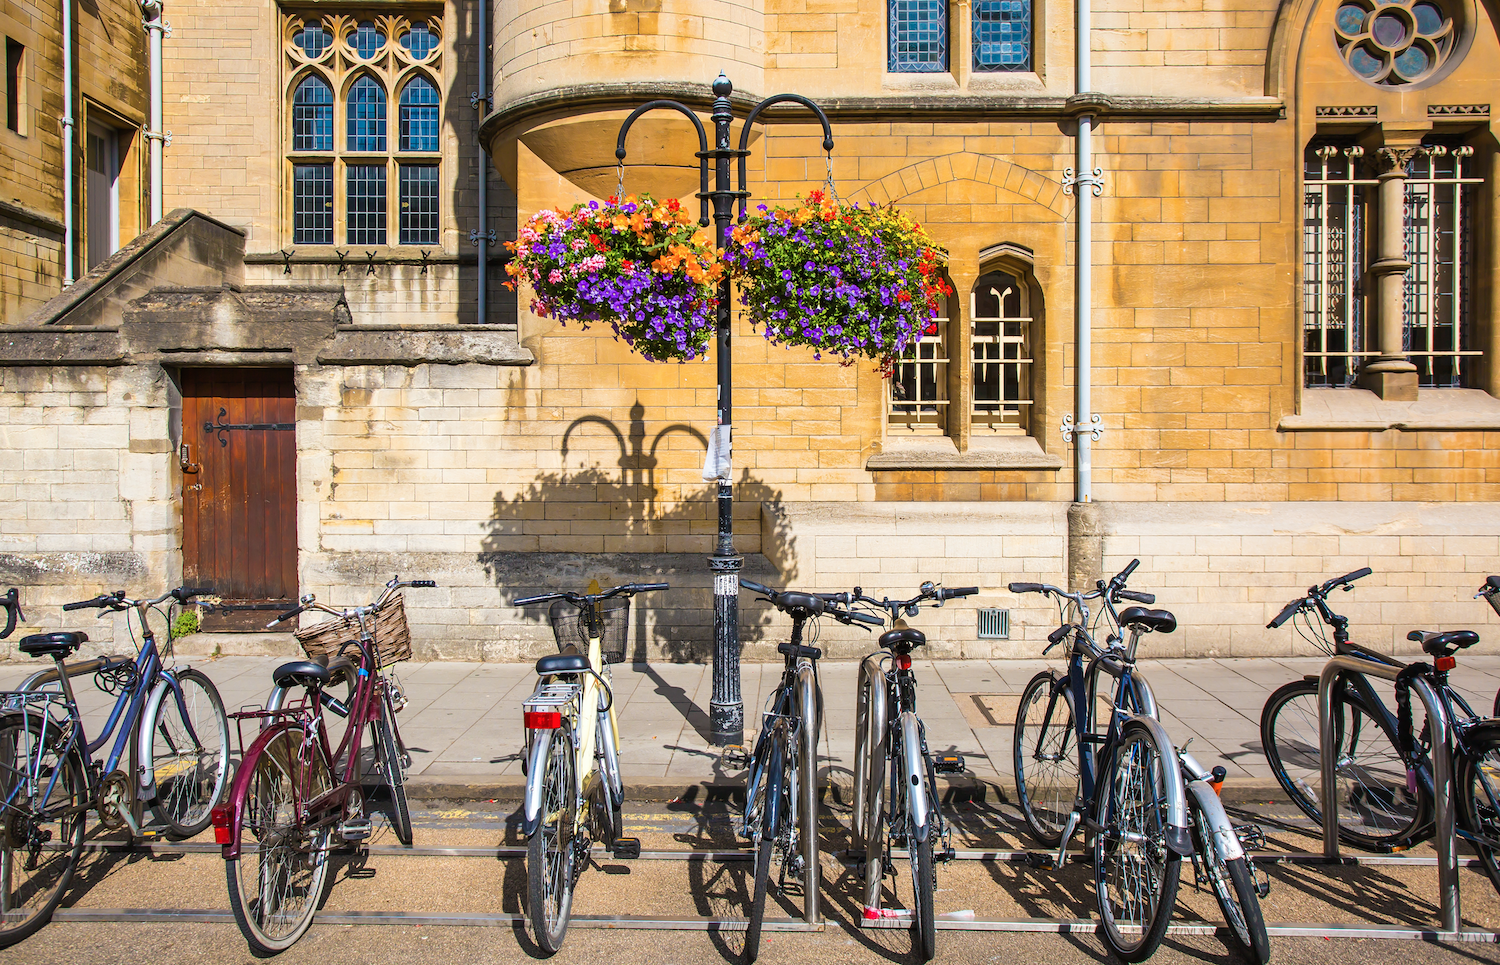 Broad St. in Oxford, England. The home of OXMT and IronMan.